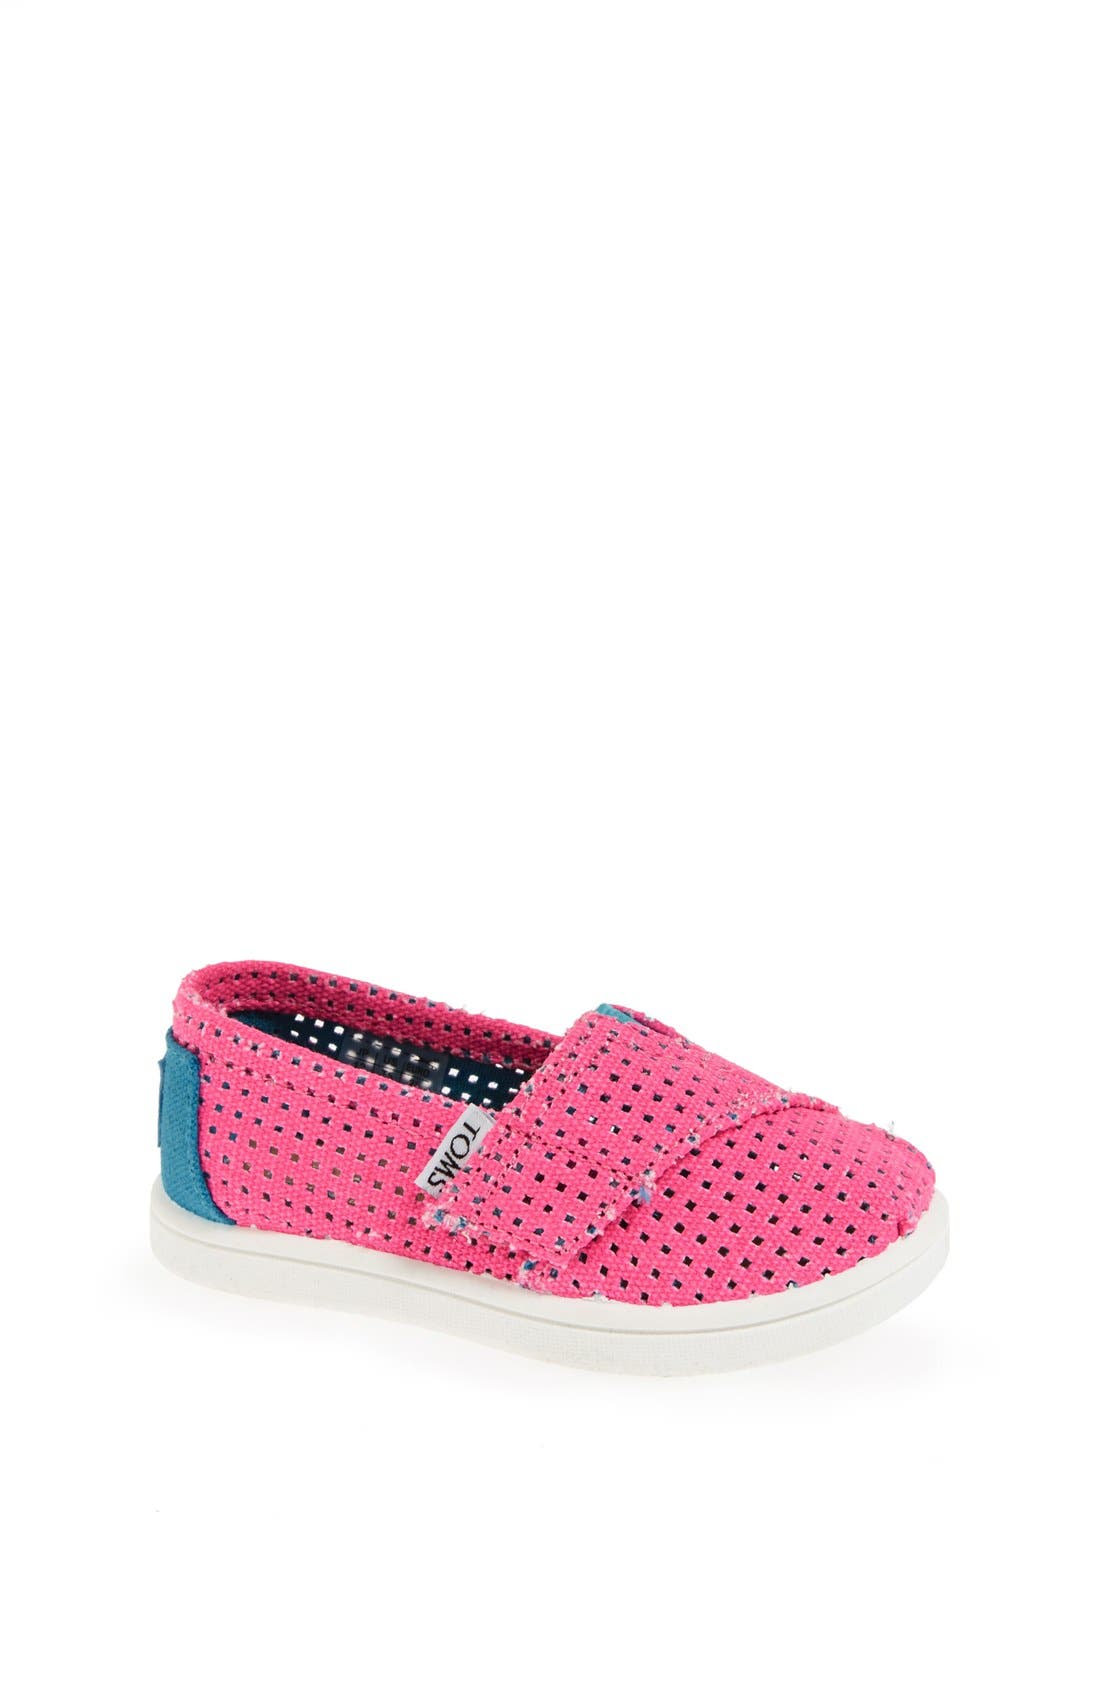 Alternate Image 1 Selected - TOMS 'Classic Tiny - Freetown' Two-Tone Slip-On (Baby, Walker & Toddler)